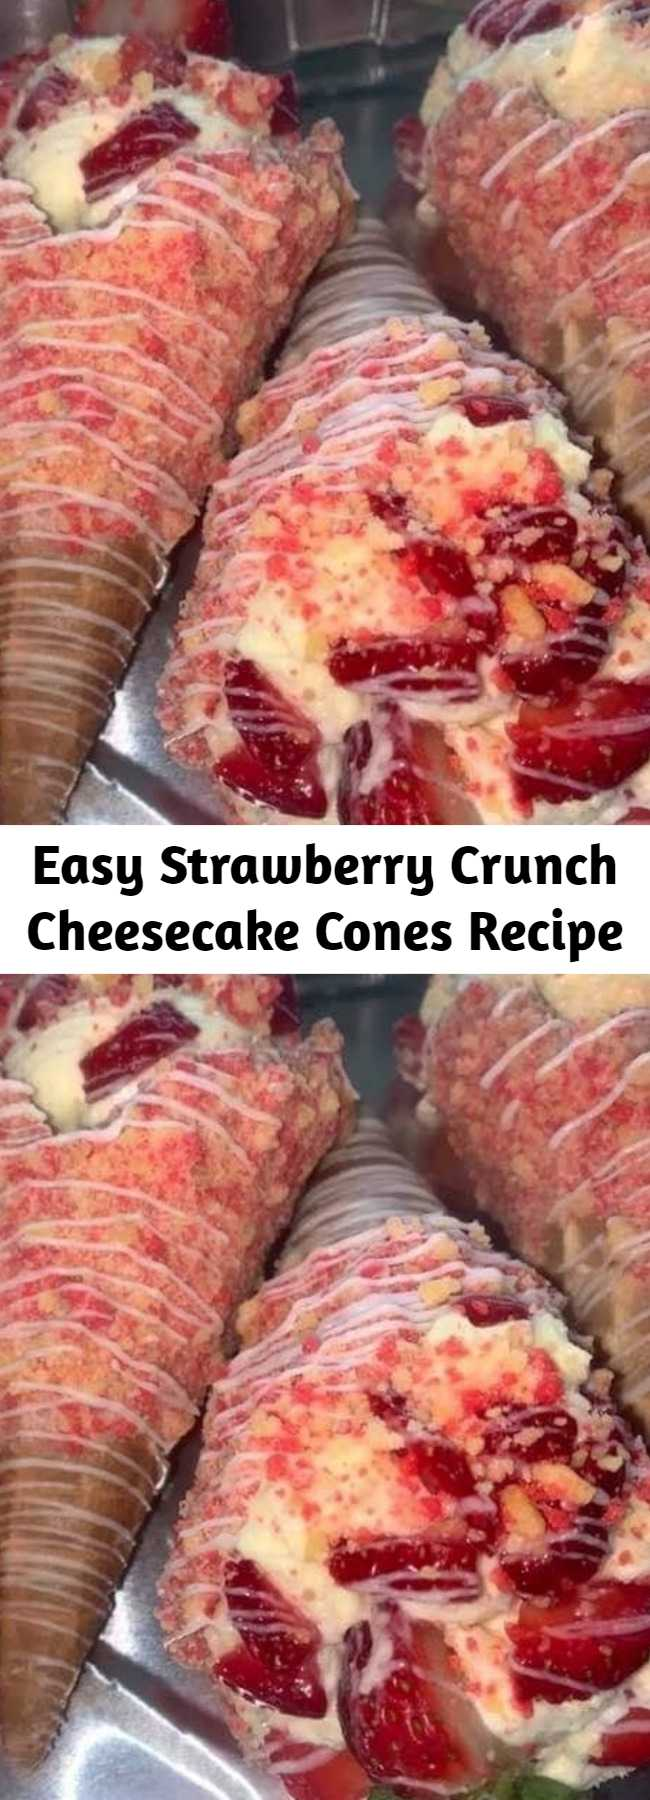 Easy Strawberry Crunch Cheesecake Cones Recipe - Omg, these are awesome. I have to head to the store because my kids are already asking again for some. A cheesecake made in the Instant Pot inspired by your favorite ice cream bar!